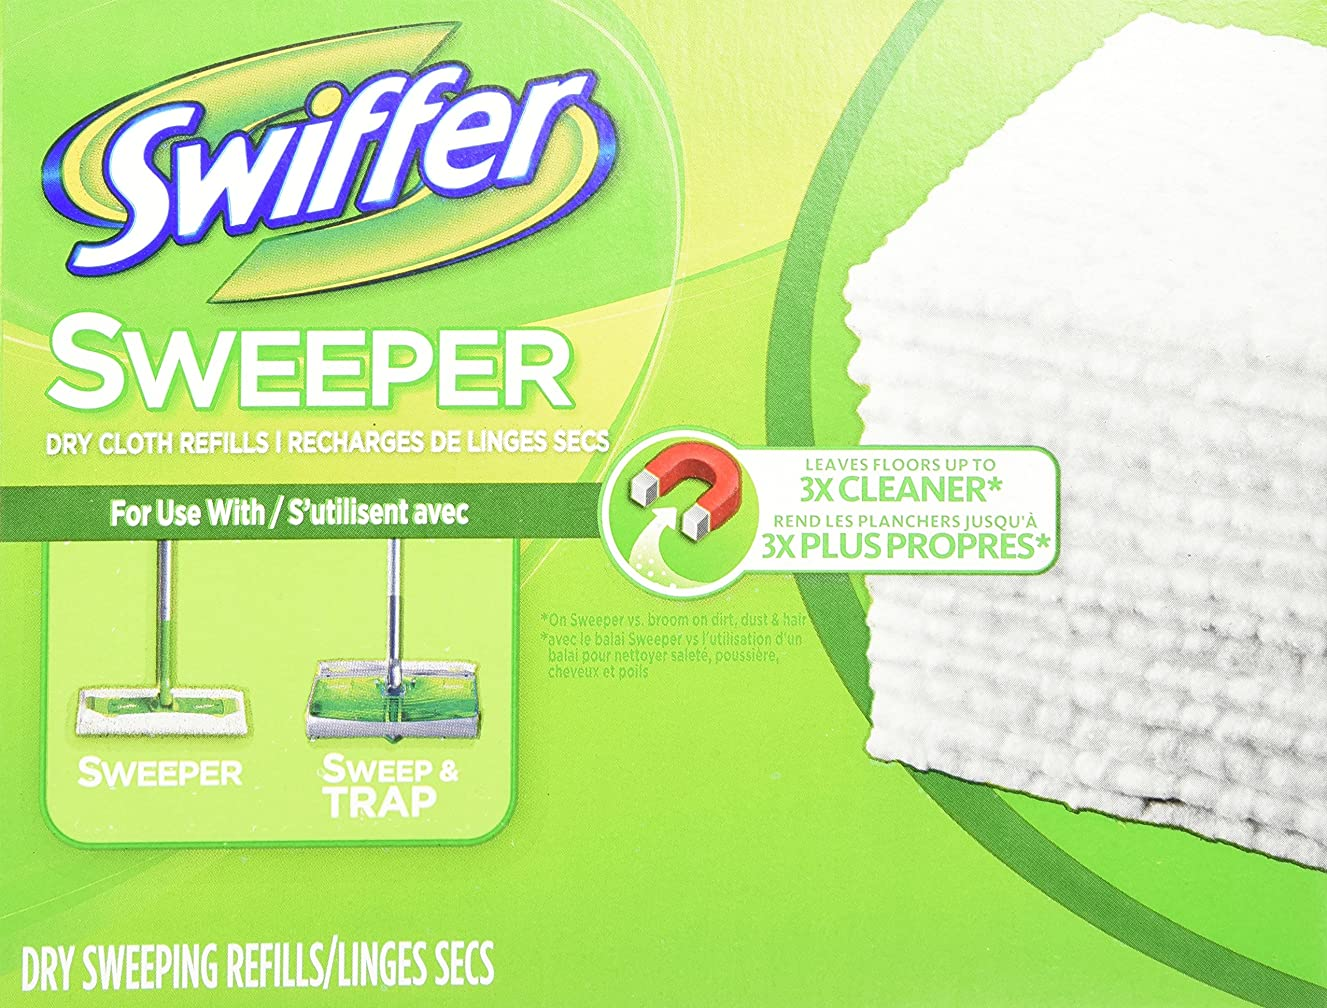 Swiffer Swiffer Sweeper Dry Cloth Refill, 80 Count oelns5908